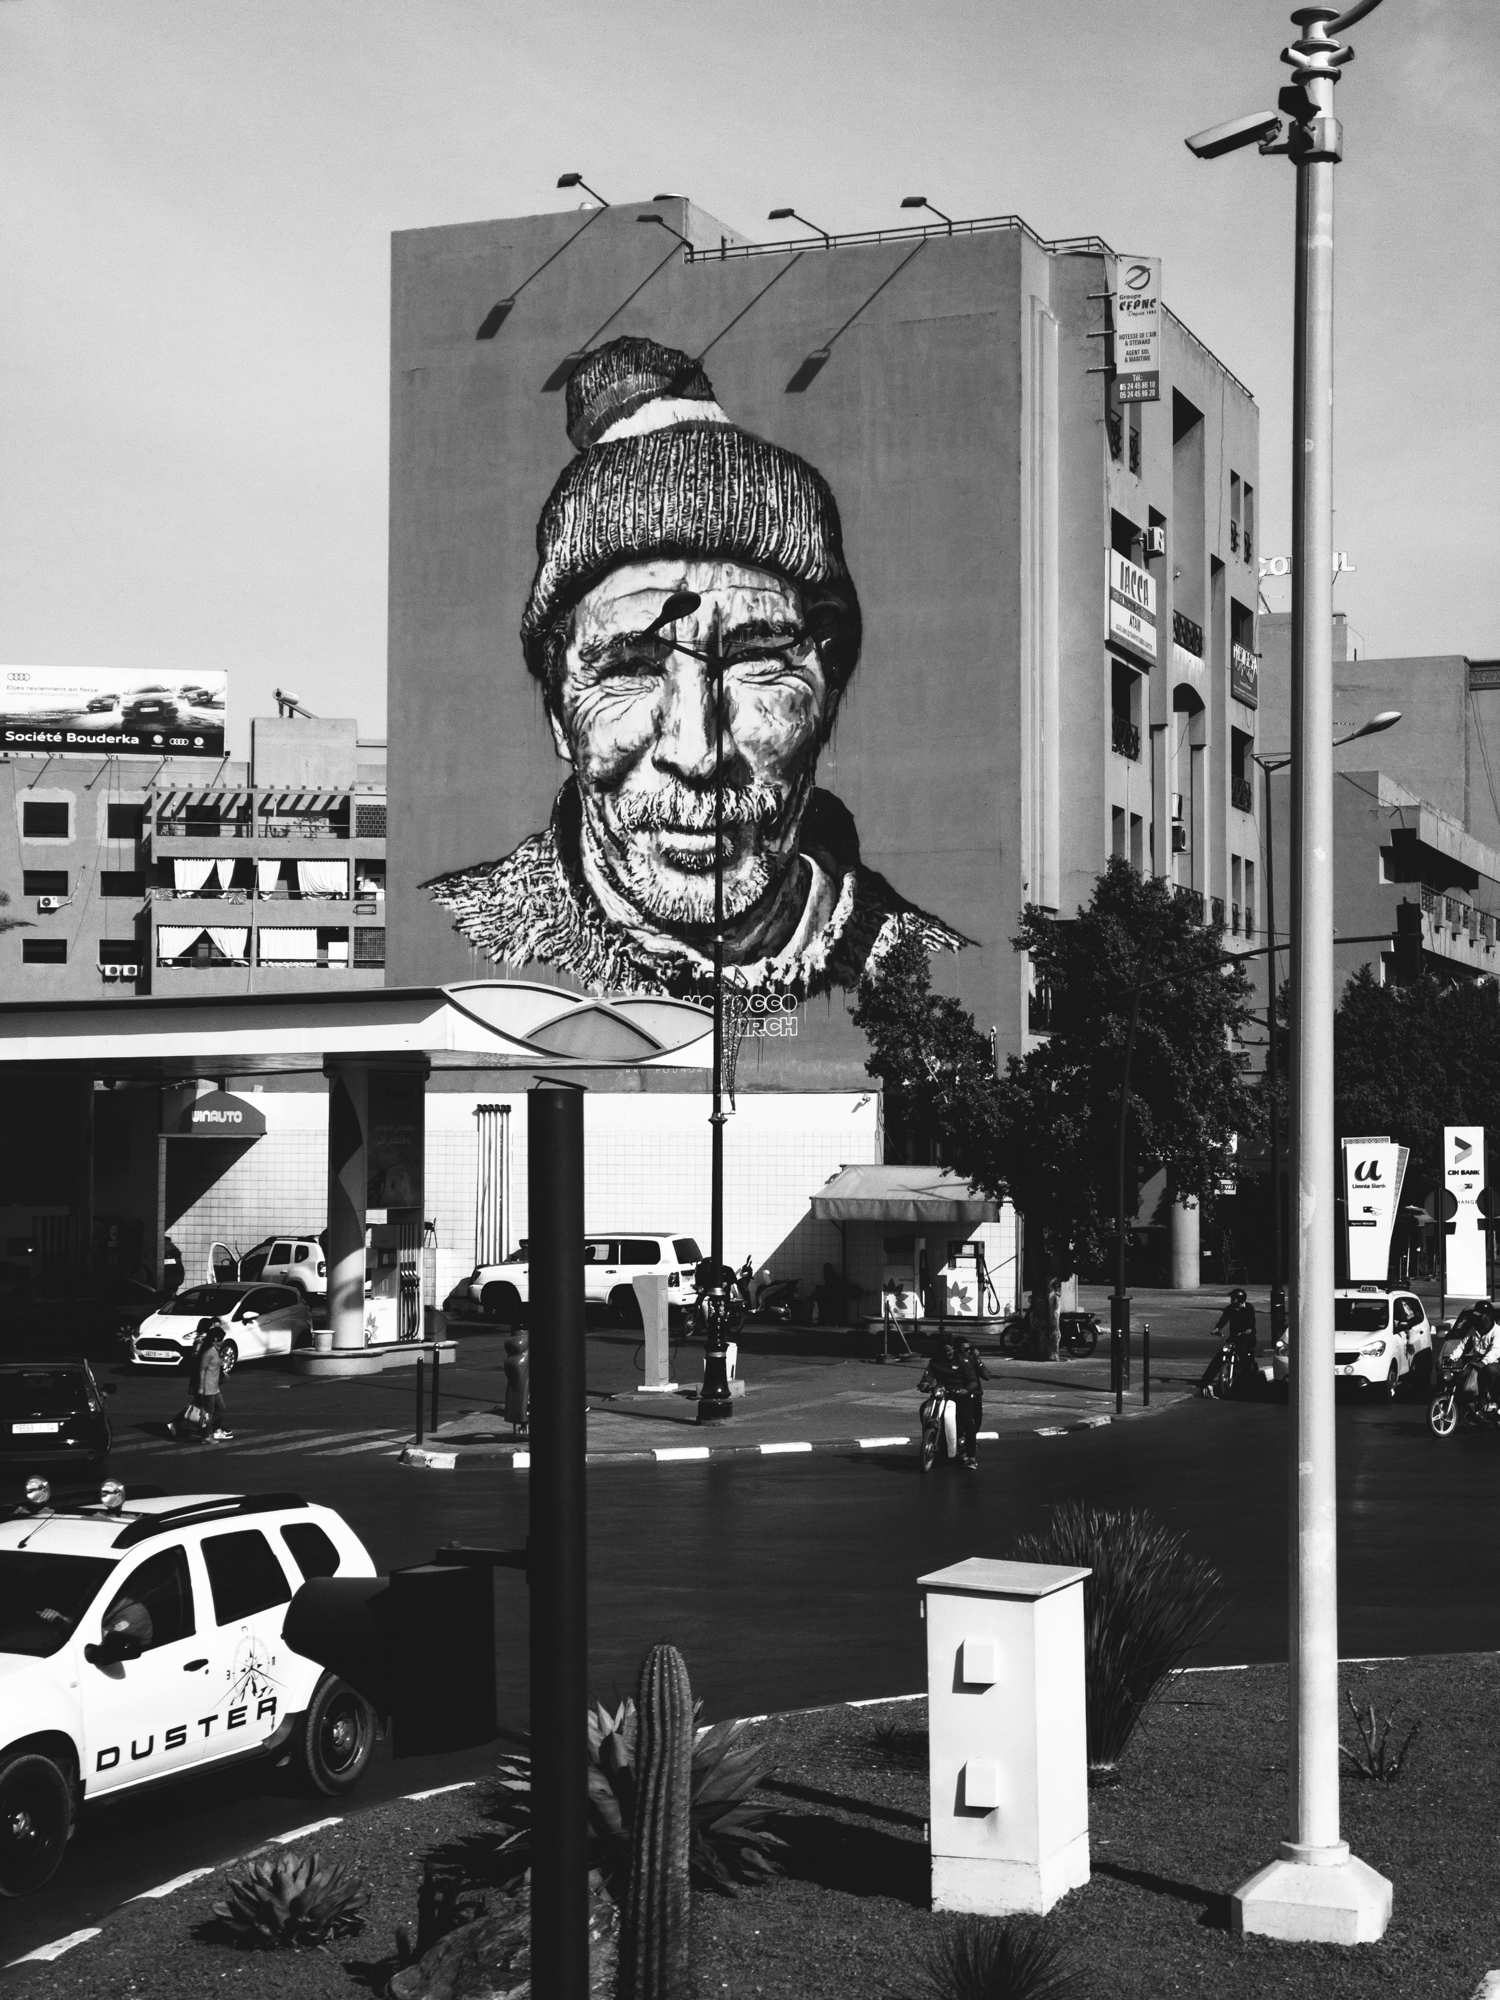 Marrakech_iPhone8+_Photos - Blog_Photos-48.jpg